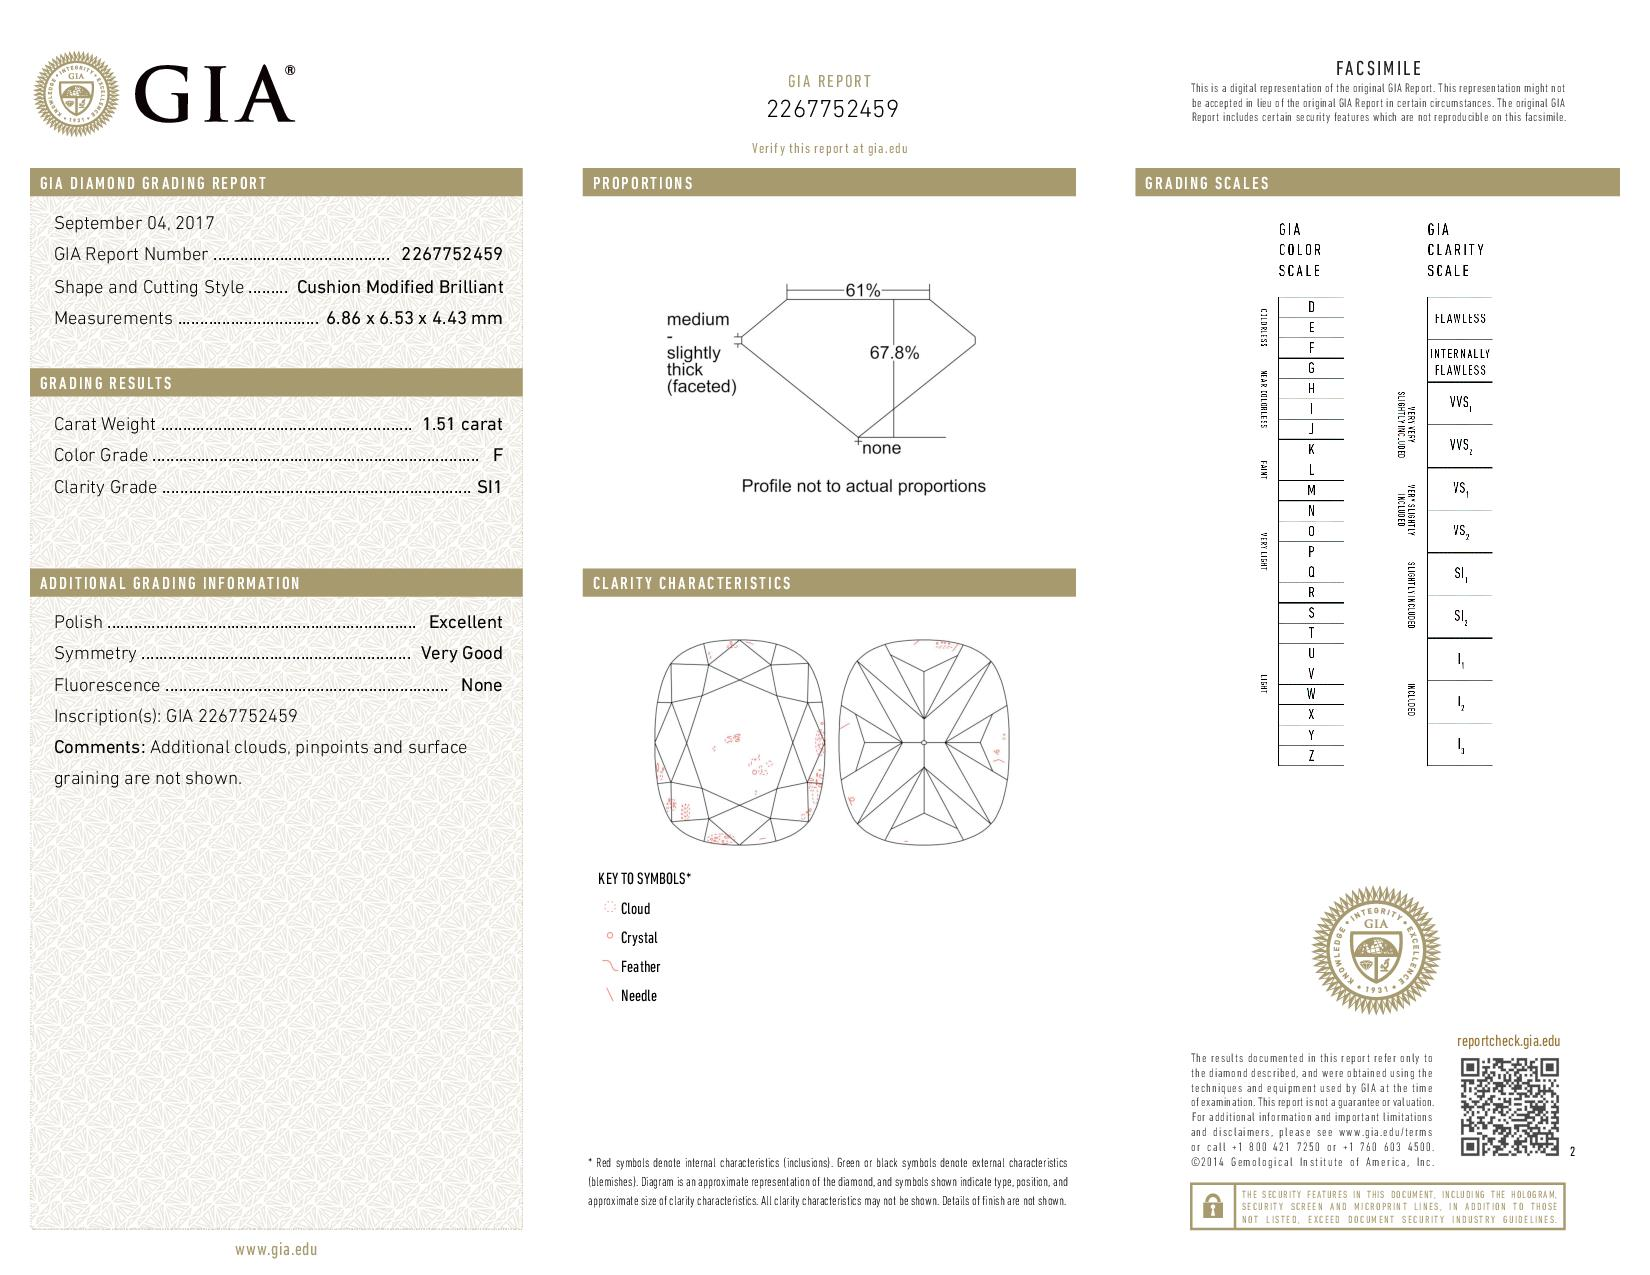 This is a 1.51 carat cushion shape, F color, SI1 clarity natural diamond accompanied by a GIA grading report.